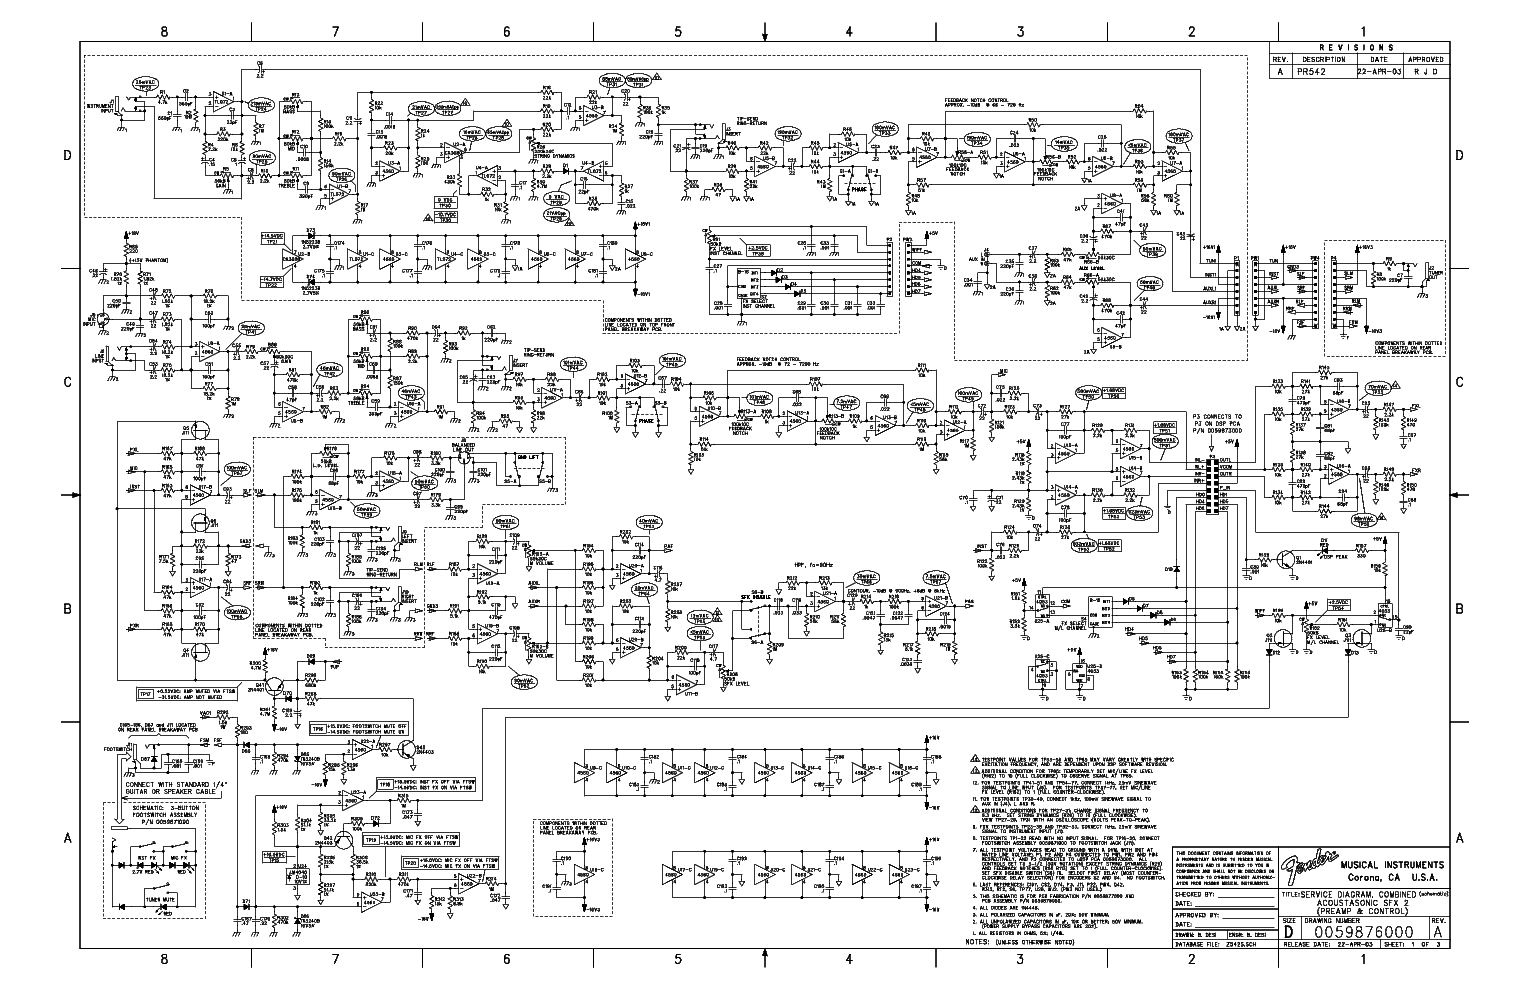 fender acoustasonic pro amplifier schematic diagram data wiring rh chamaela co Telecaster Seymour Duncan Wiring Diagrams Fender Telecaster Wiring-Diagram